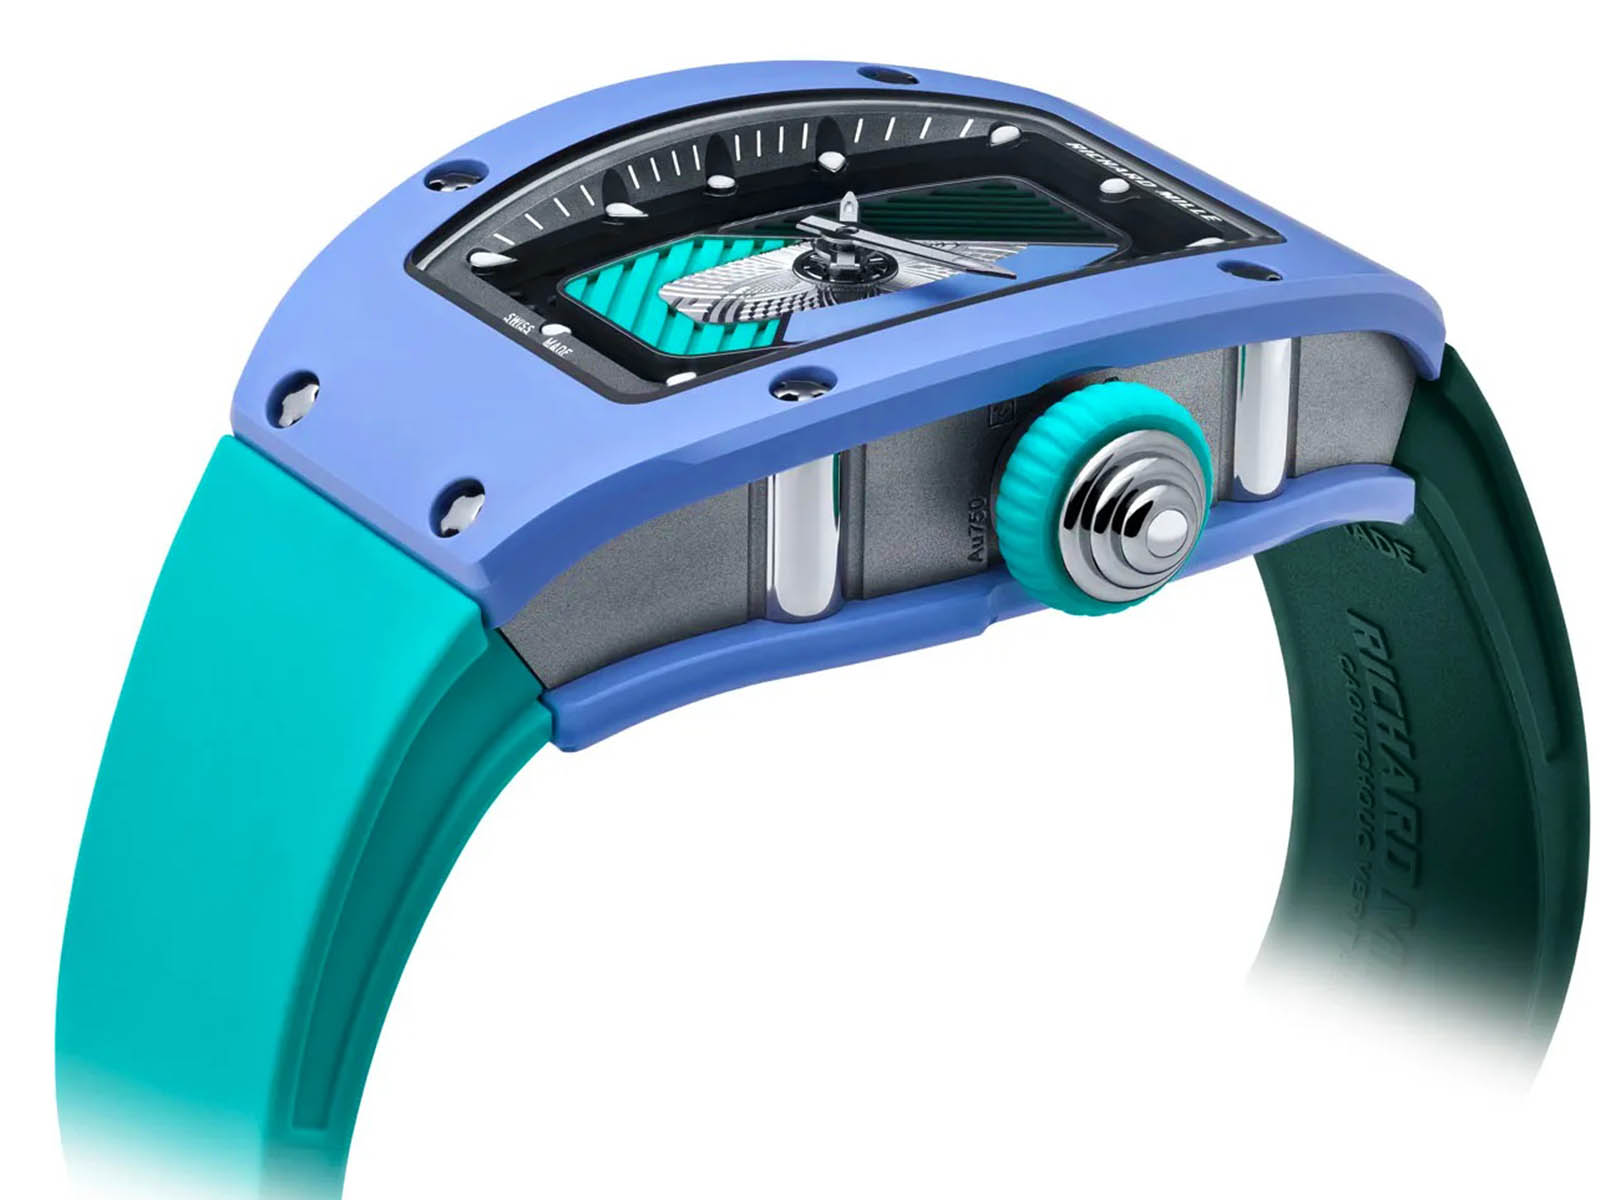 richard-mille-rm-07-01-colored-ceramics-collection-4.jpg